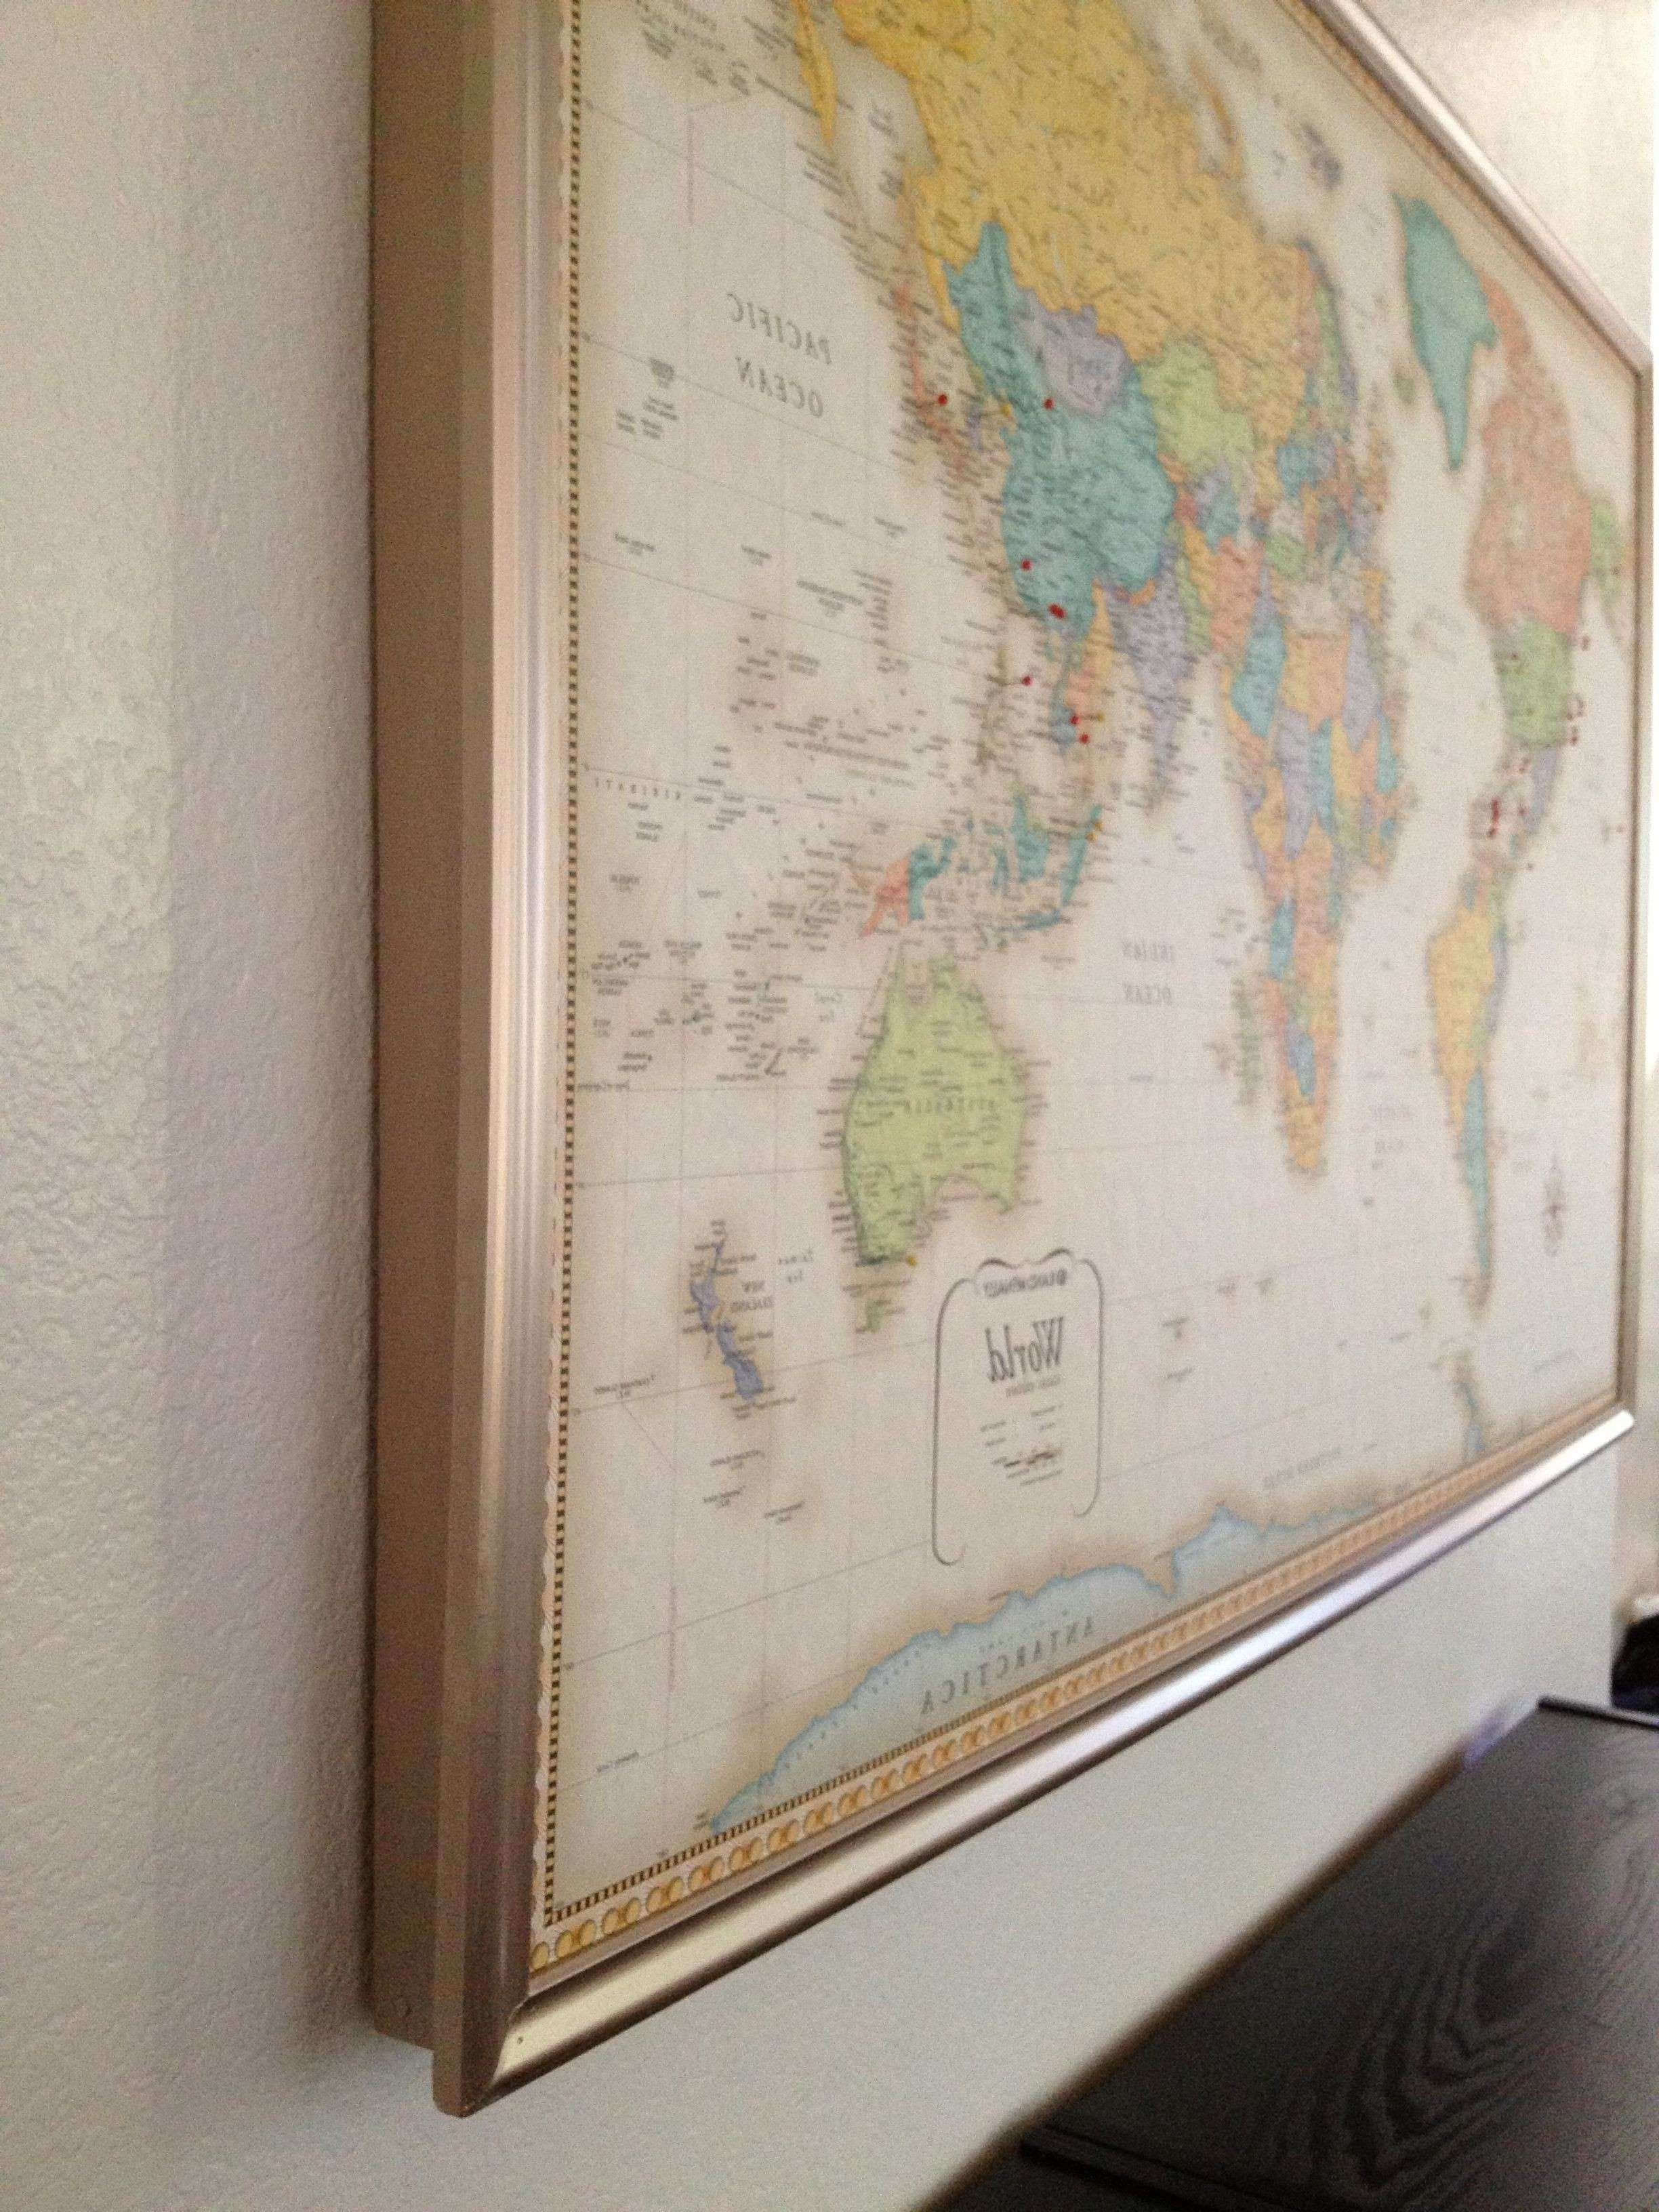 Diy World Map Wall Art Regarding Well Known World Map Wall Art Framed Fresh Diy With Pins Of – Awesomebryner (View 5 of 20)